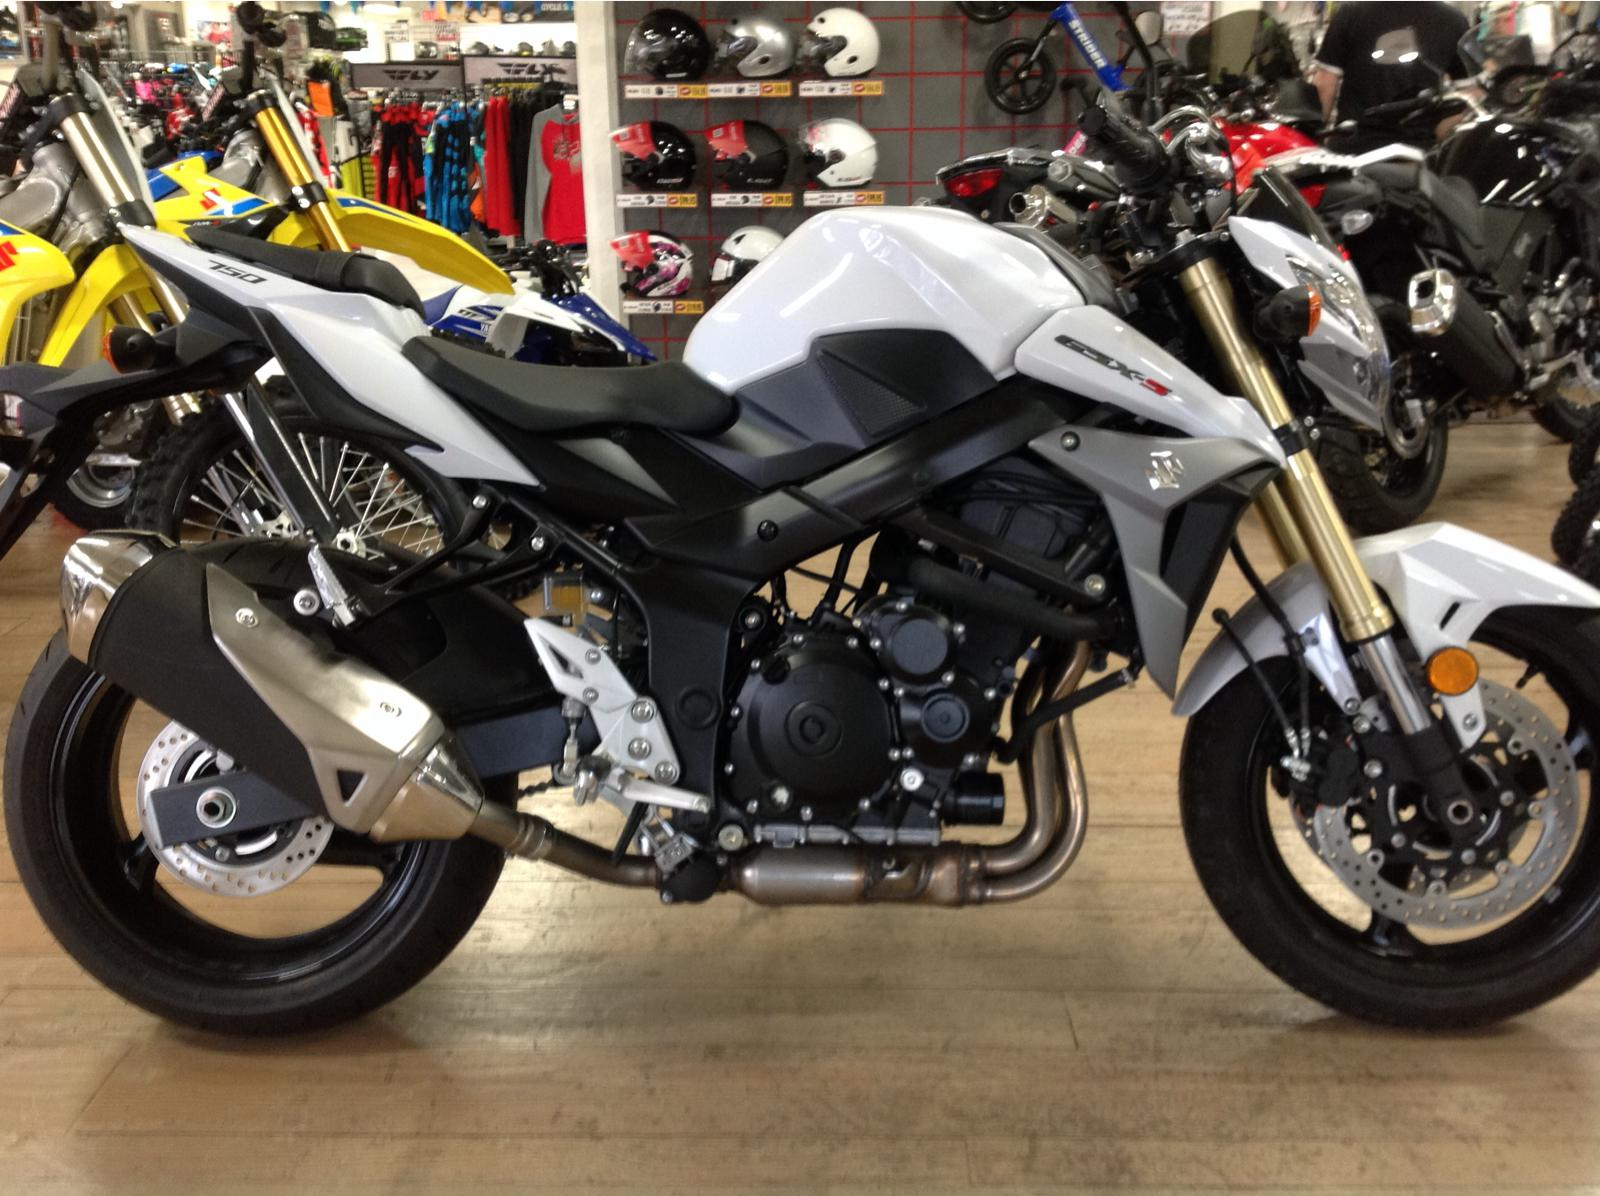 2016 Suzuki GSX-S750 for sale 39676